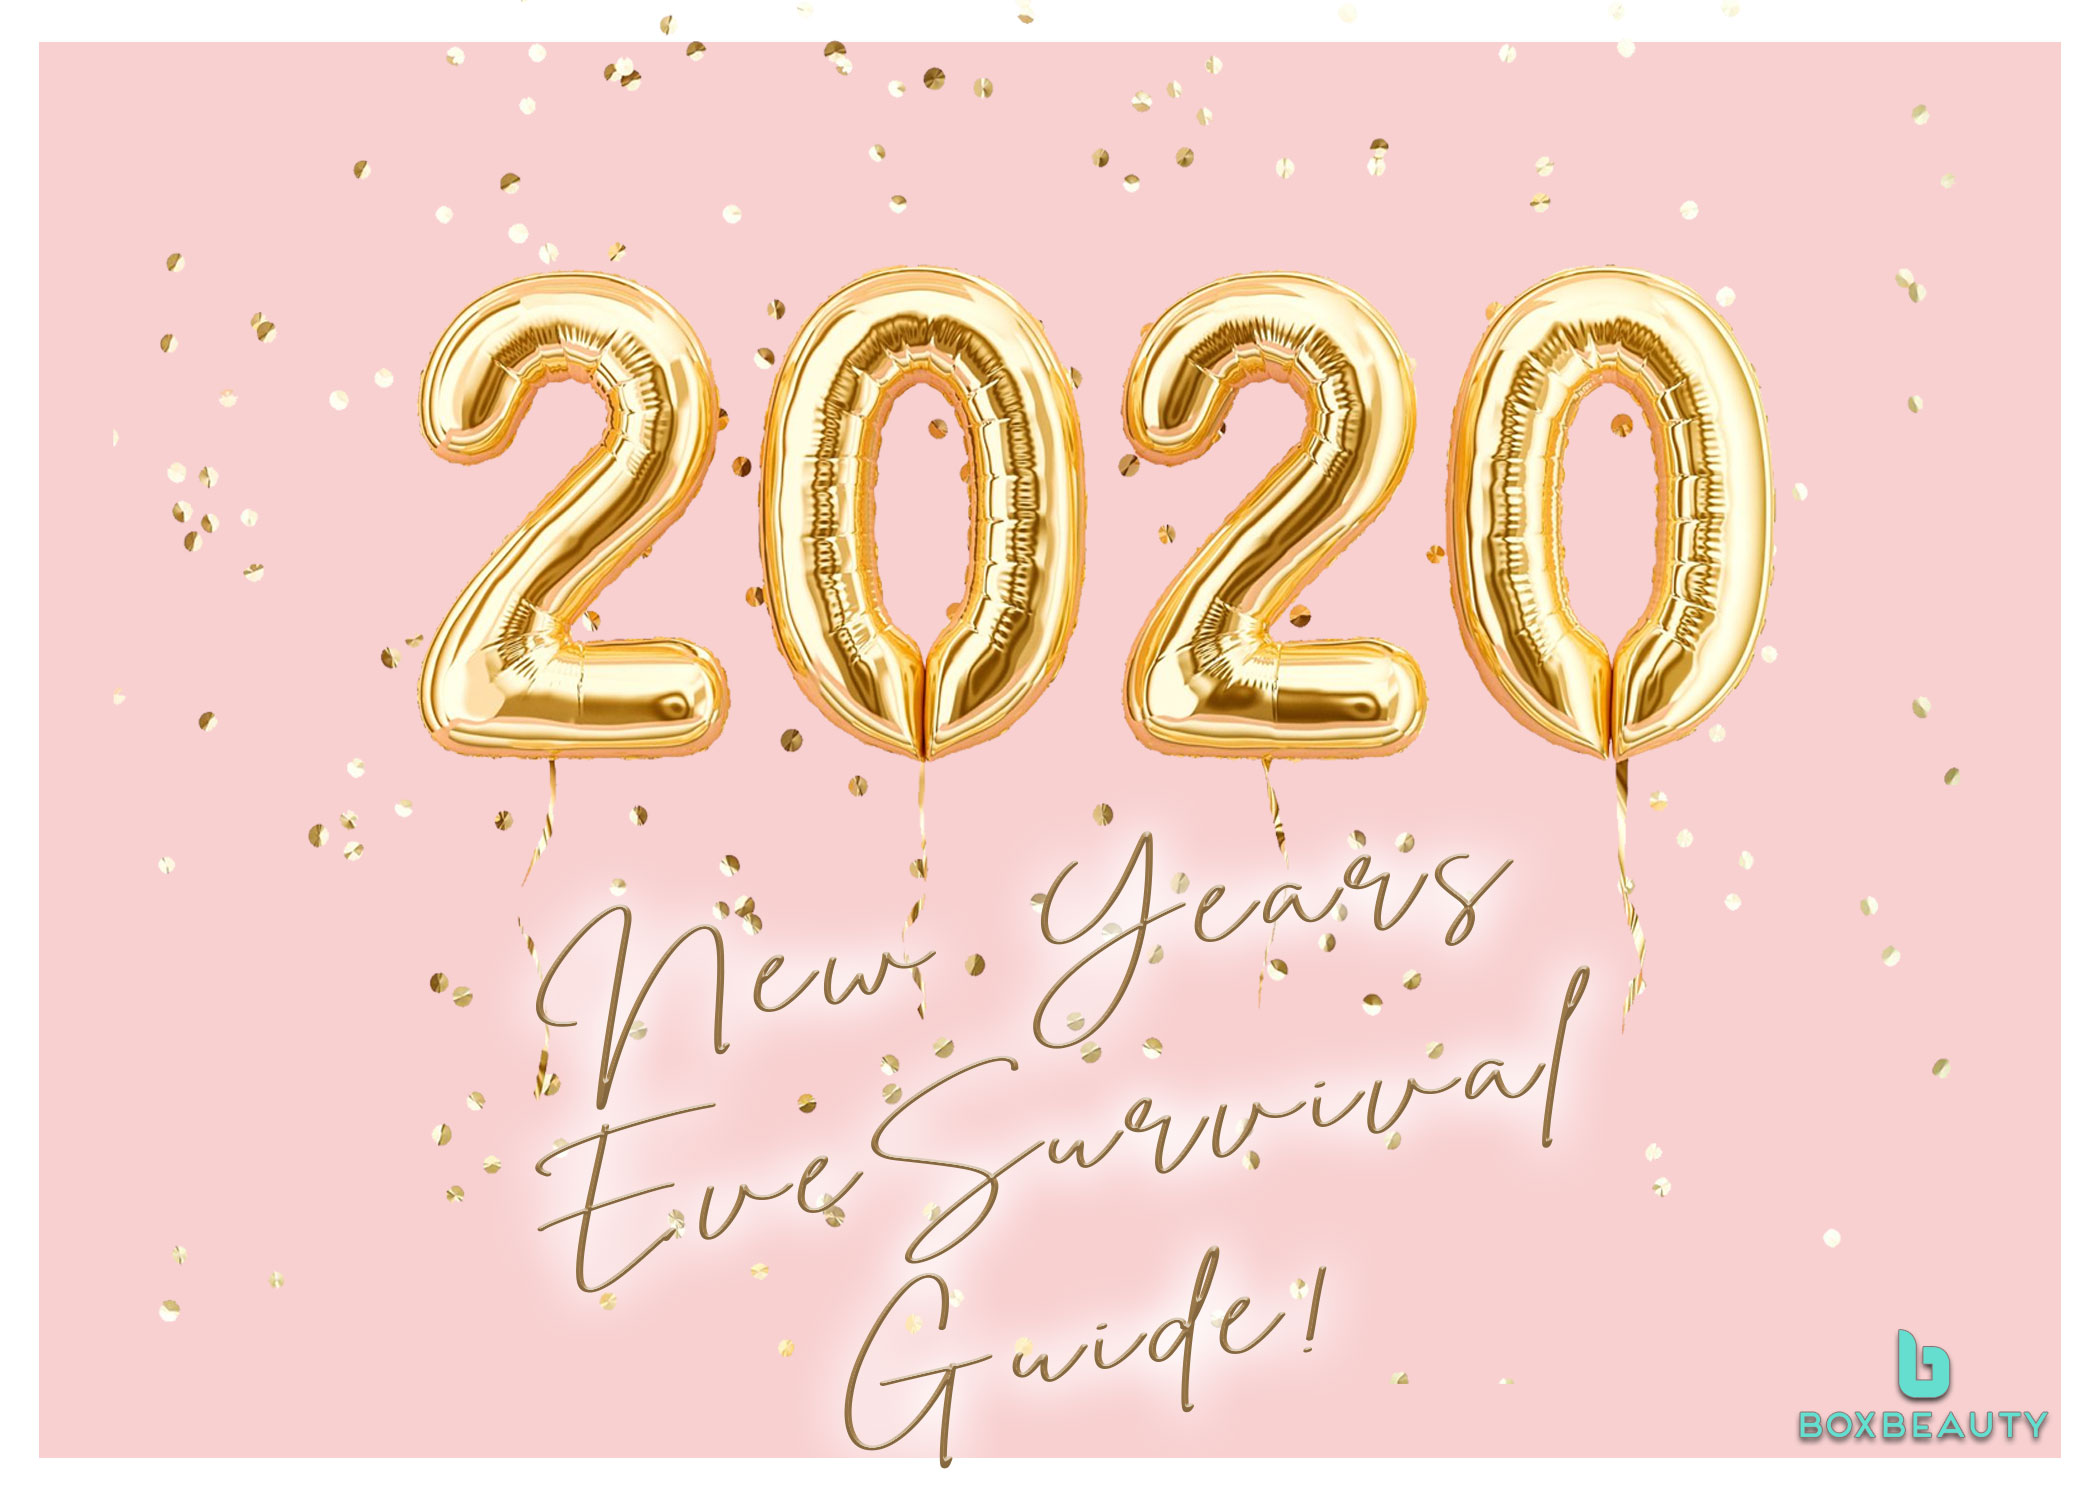 Box Beauty's New Year's Survival Guide